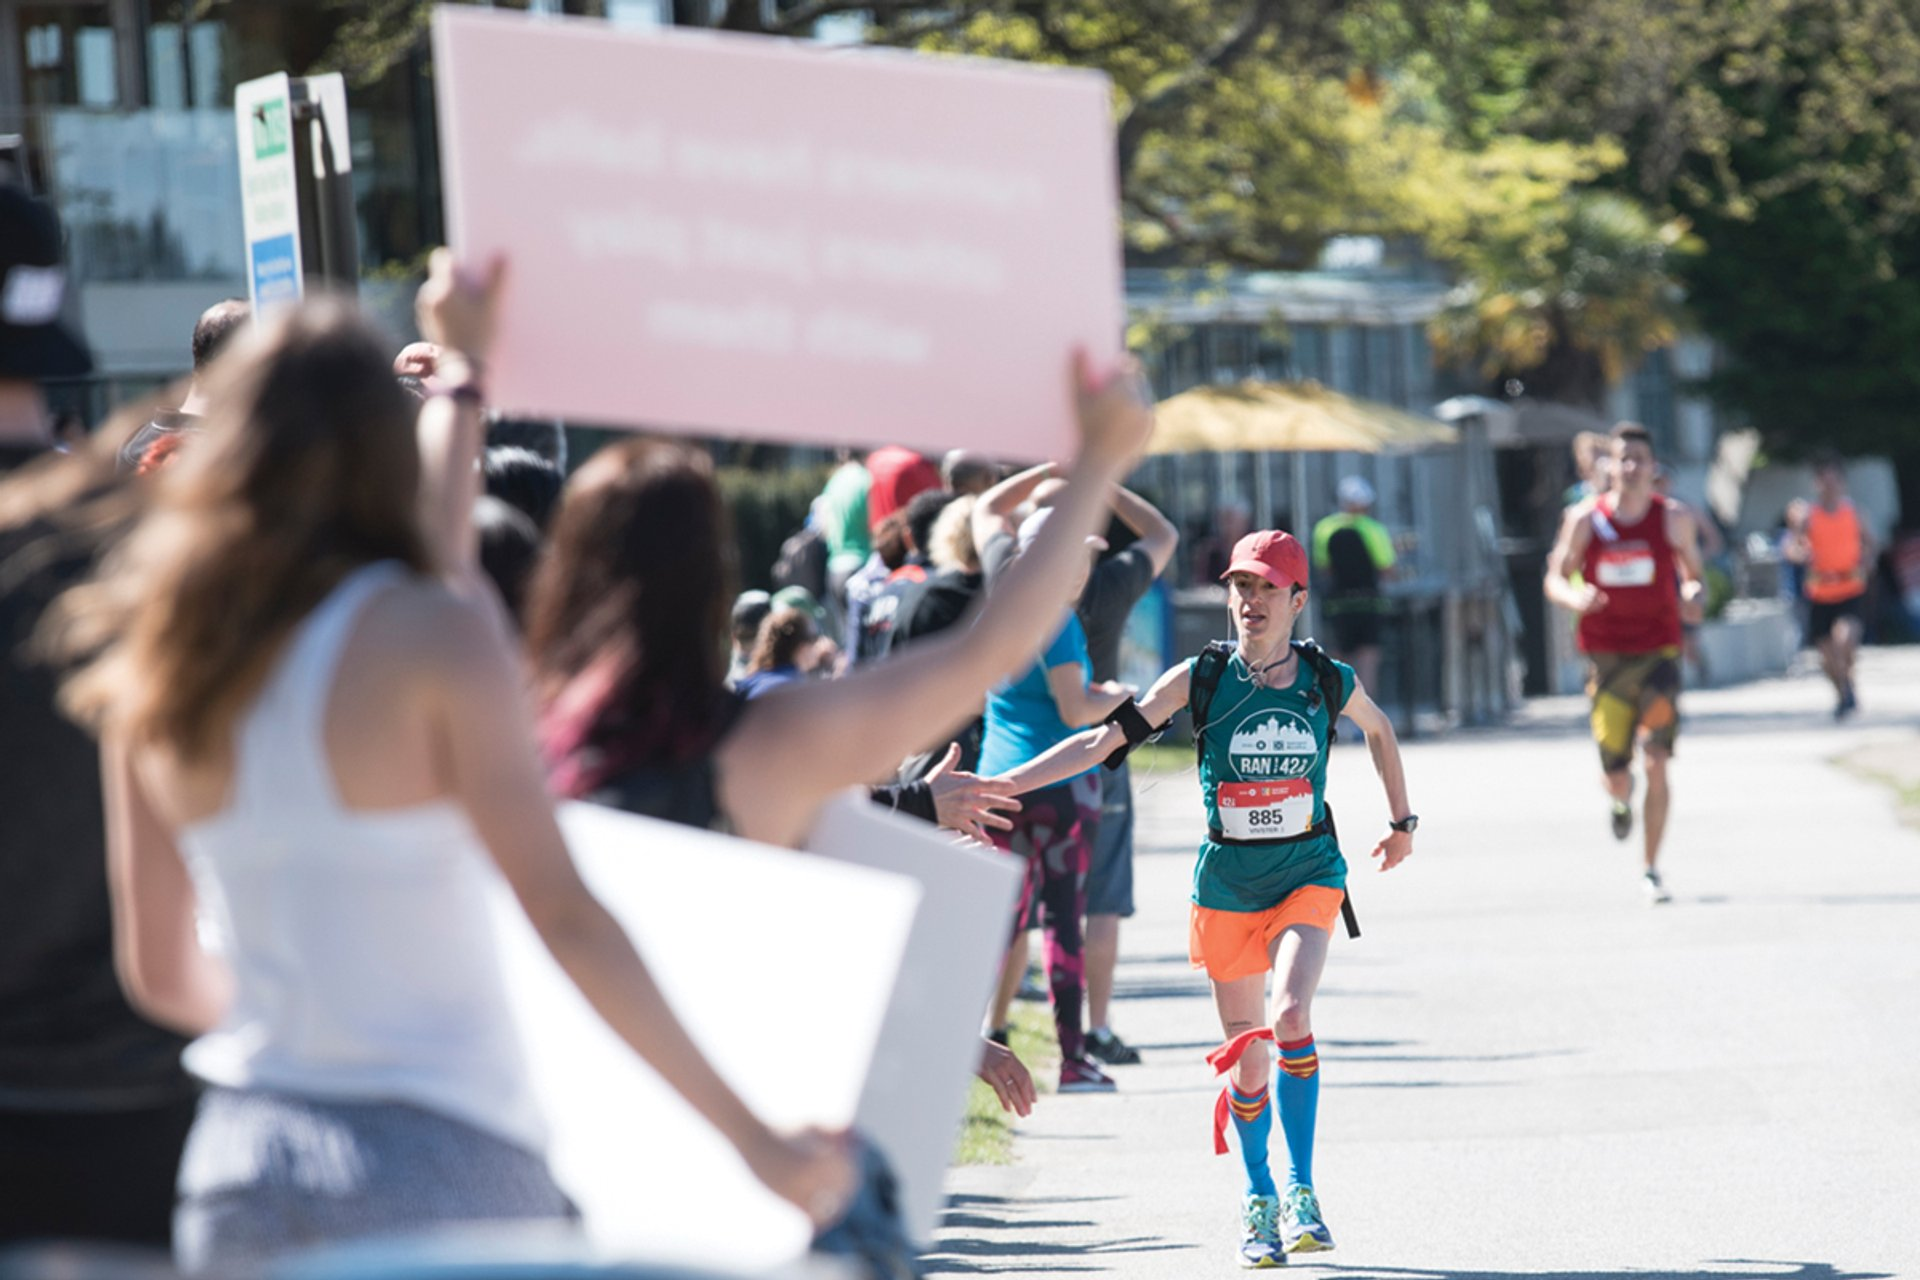 Best time for Vancouver Marathon in Vancouver 2019